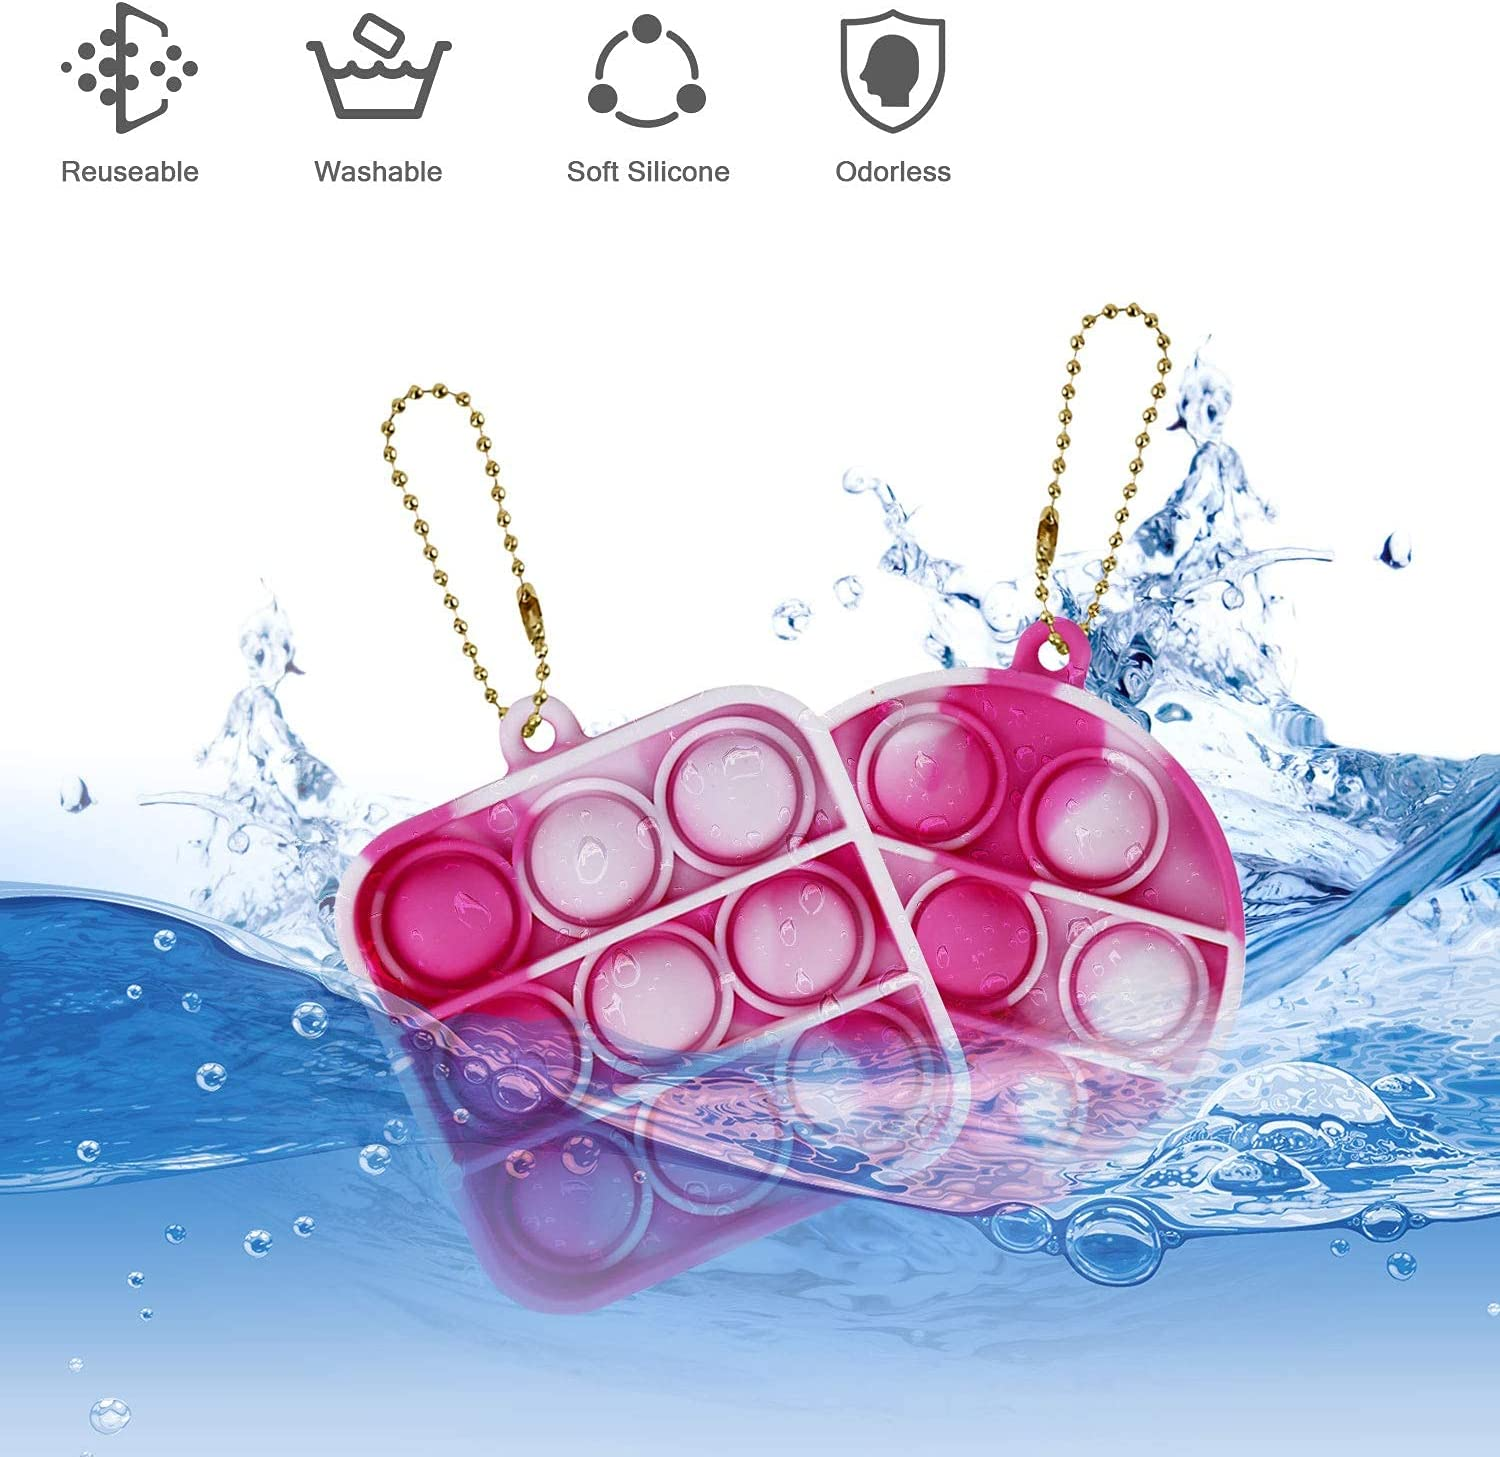 Green Pink Blue 2PCS Simple Fidget Toy Pop Fidget Toy Mini Stress Relief Hand Toys Keychain Toy Push Pop Bubble Wrap Pop Anxiety Stress Reliever Office Desk Toy for Kids Adults